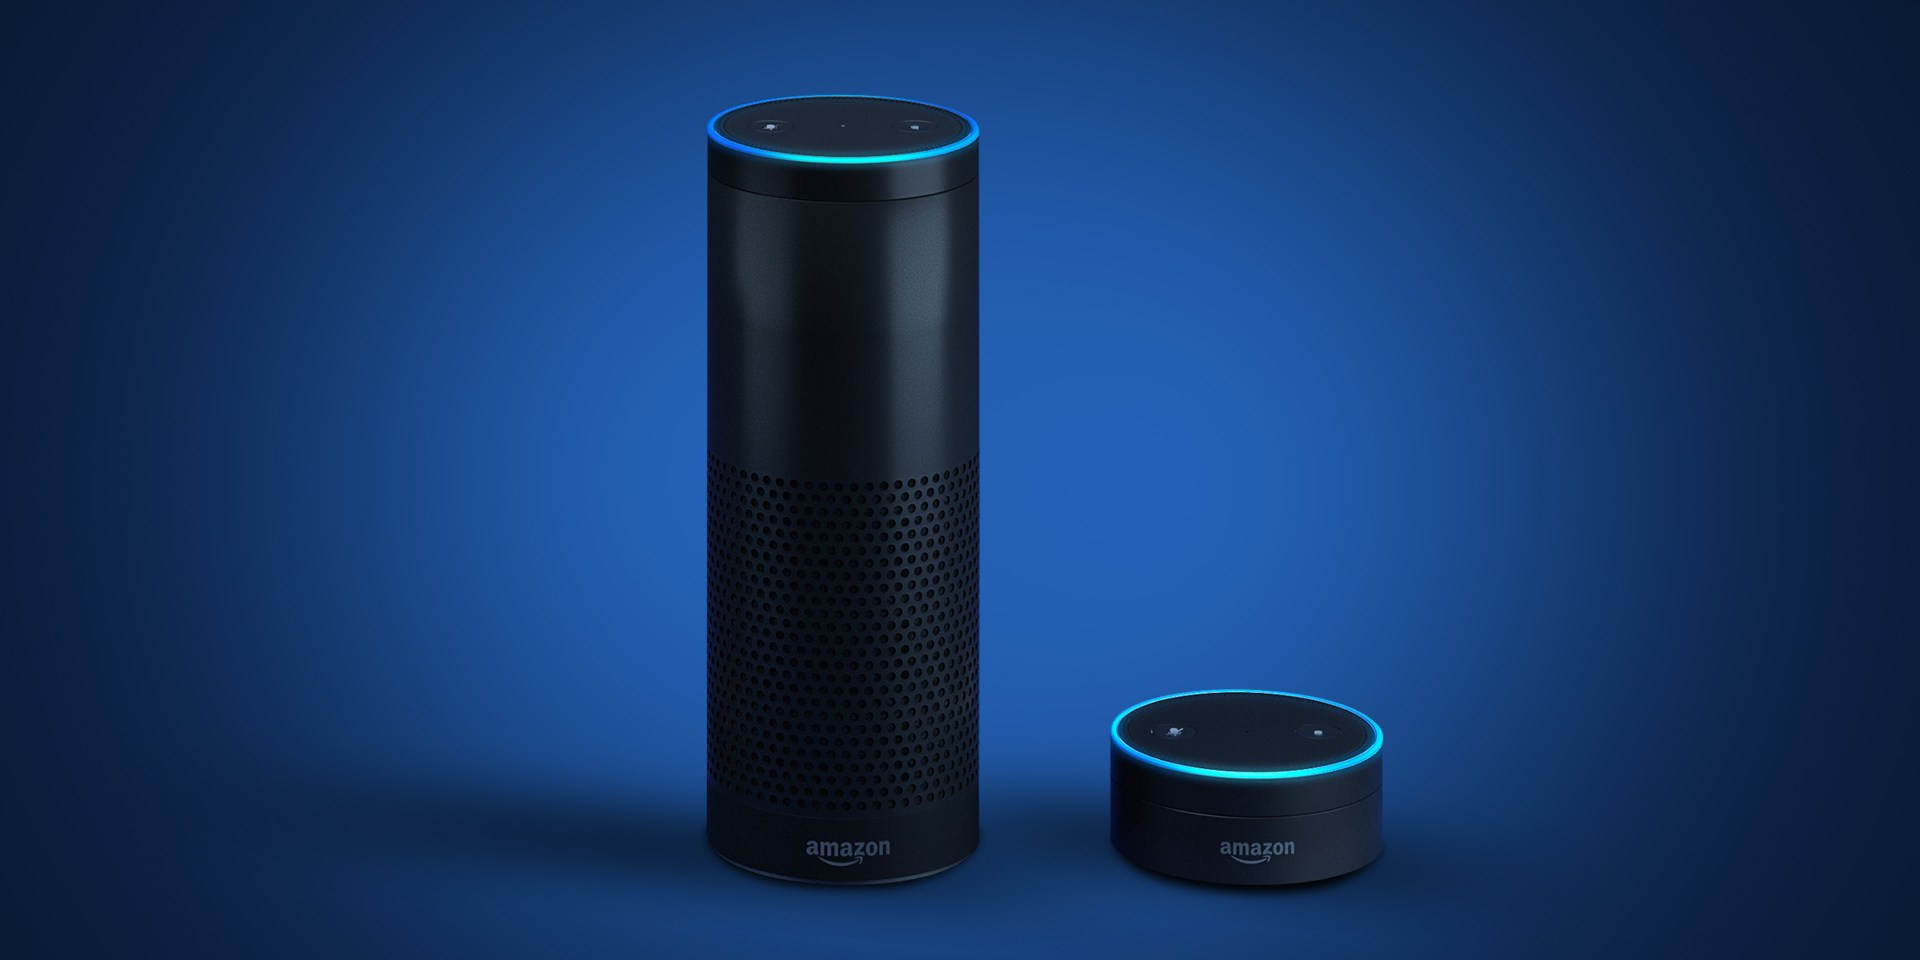 Amazon Echo Dot And Echo to Be Rolled Out in India